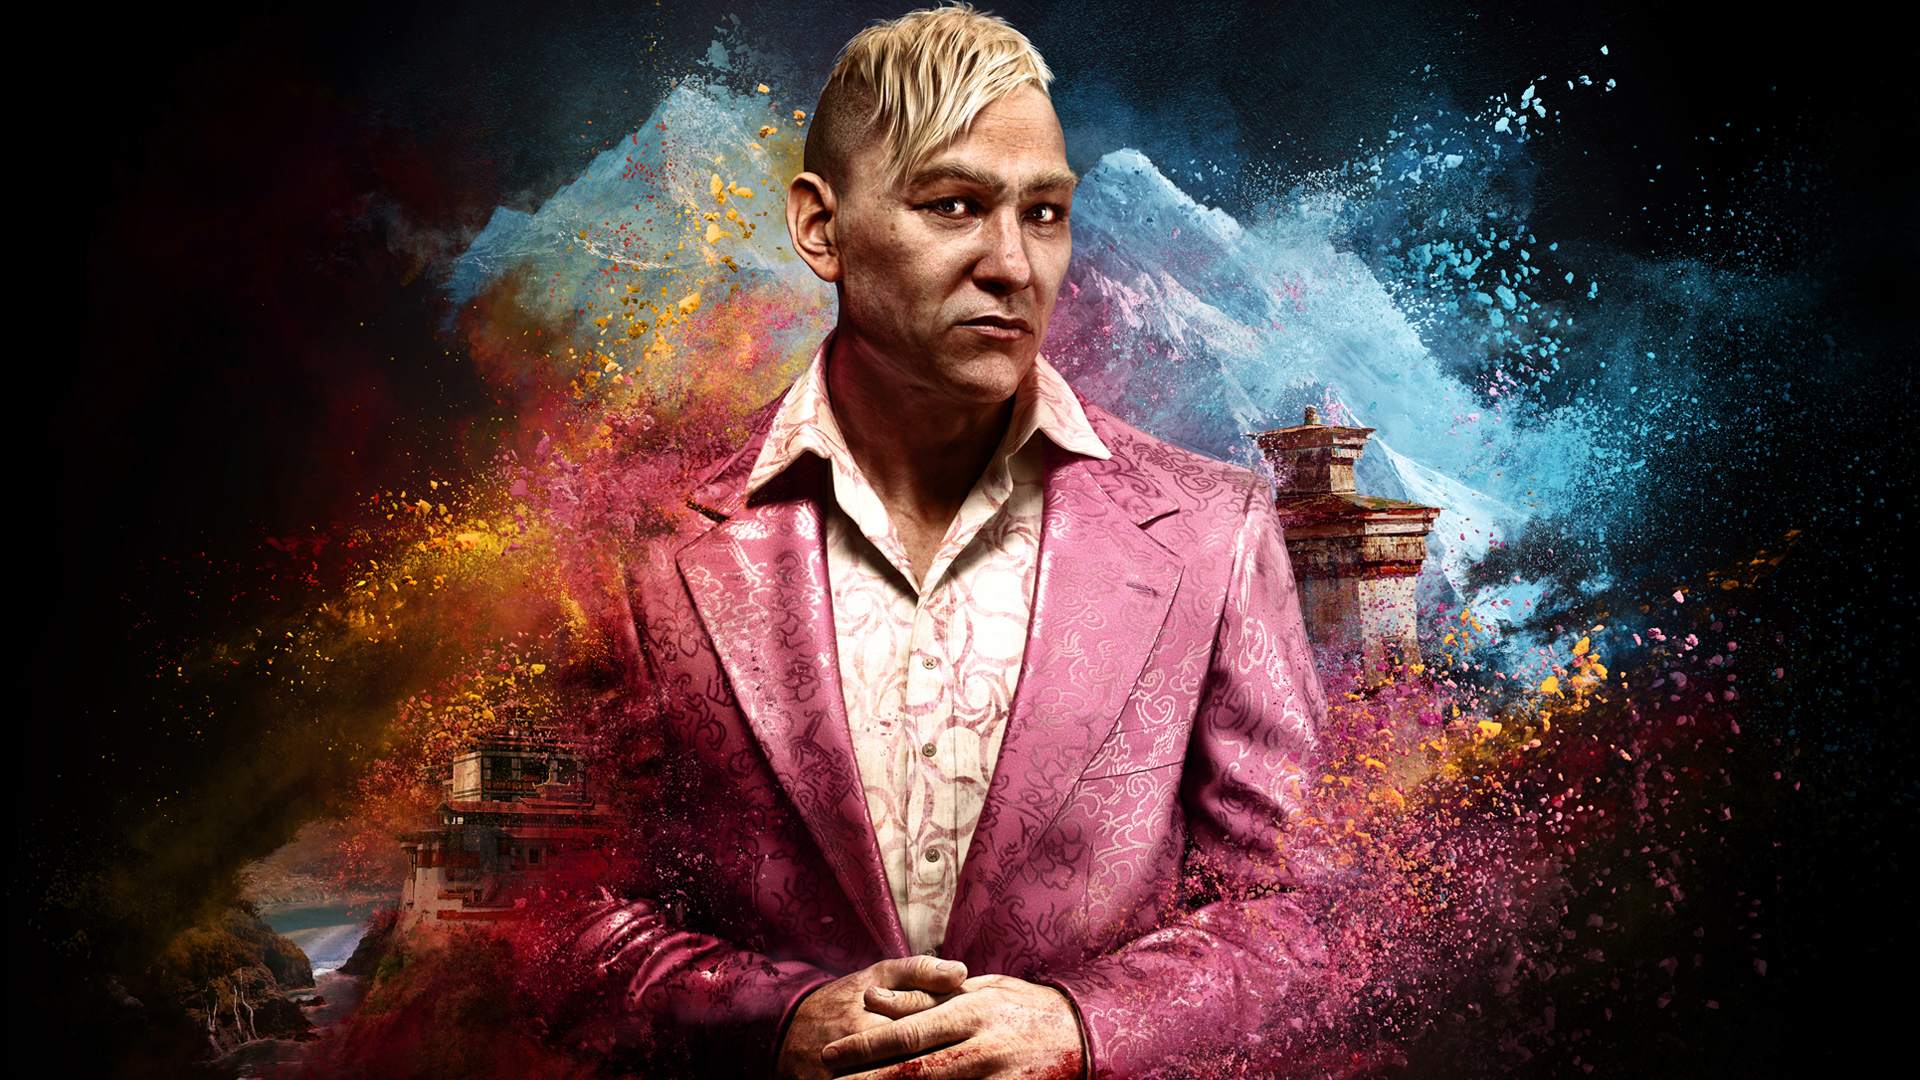 Far Cry 4 Wallpaper Backgrounds